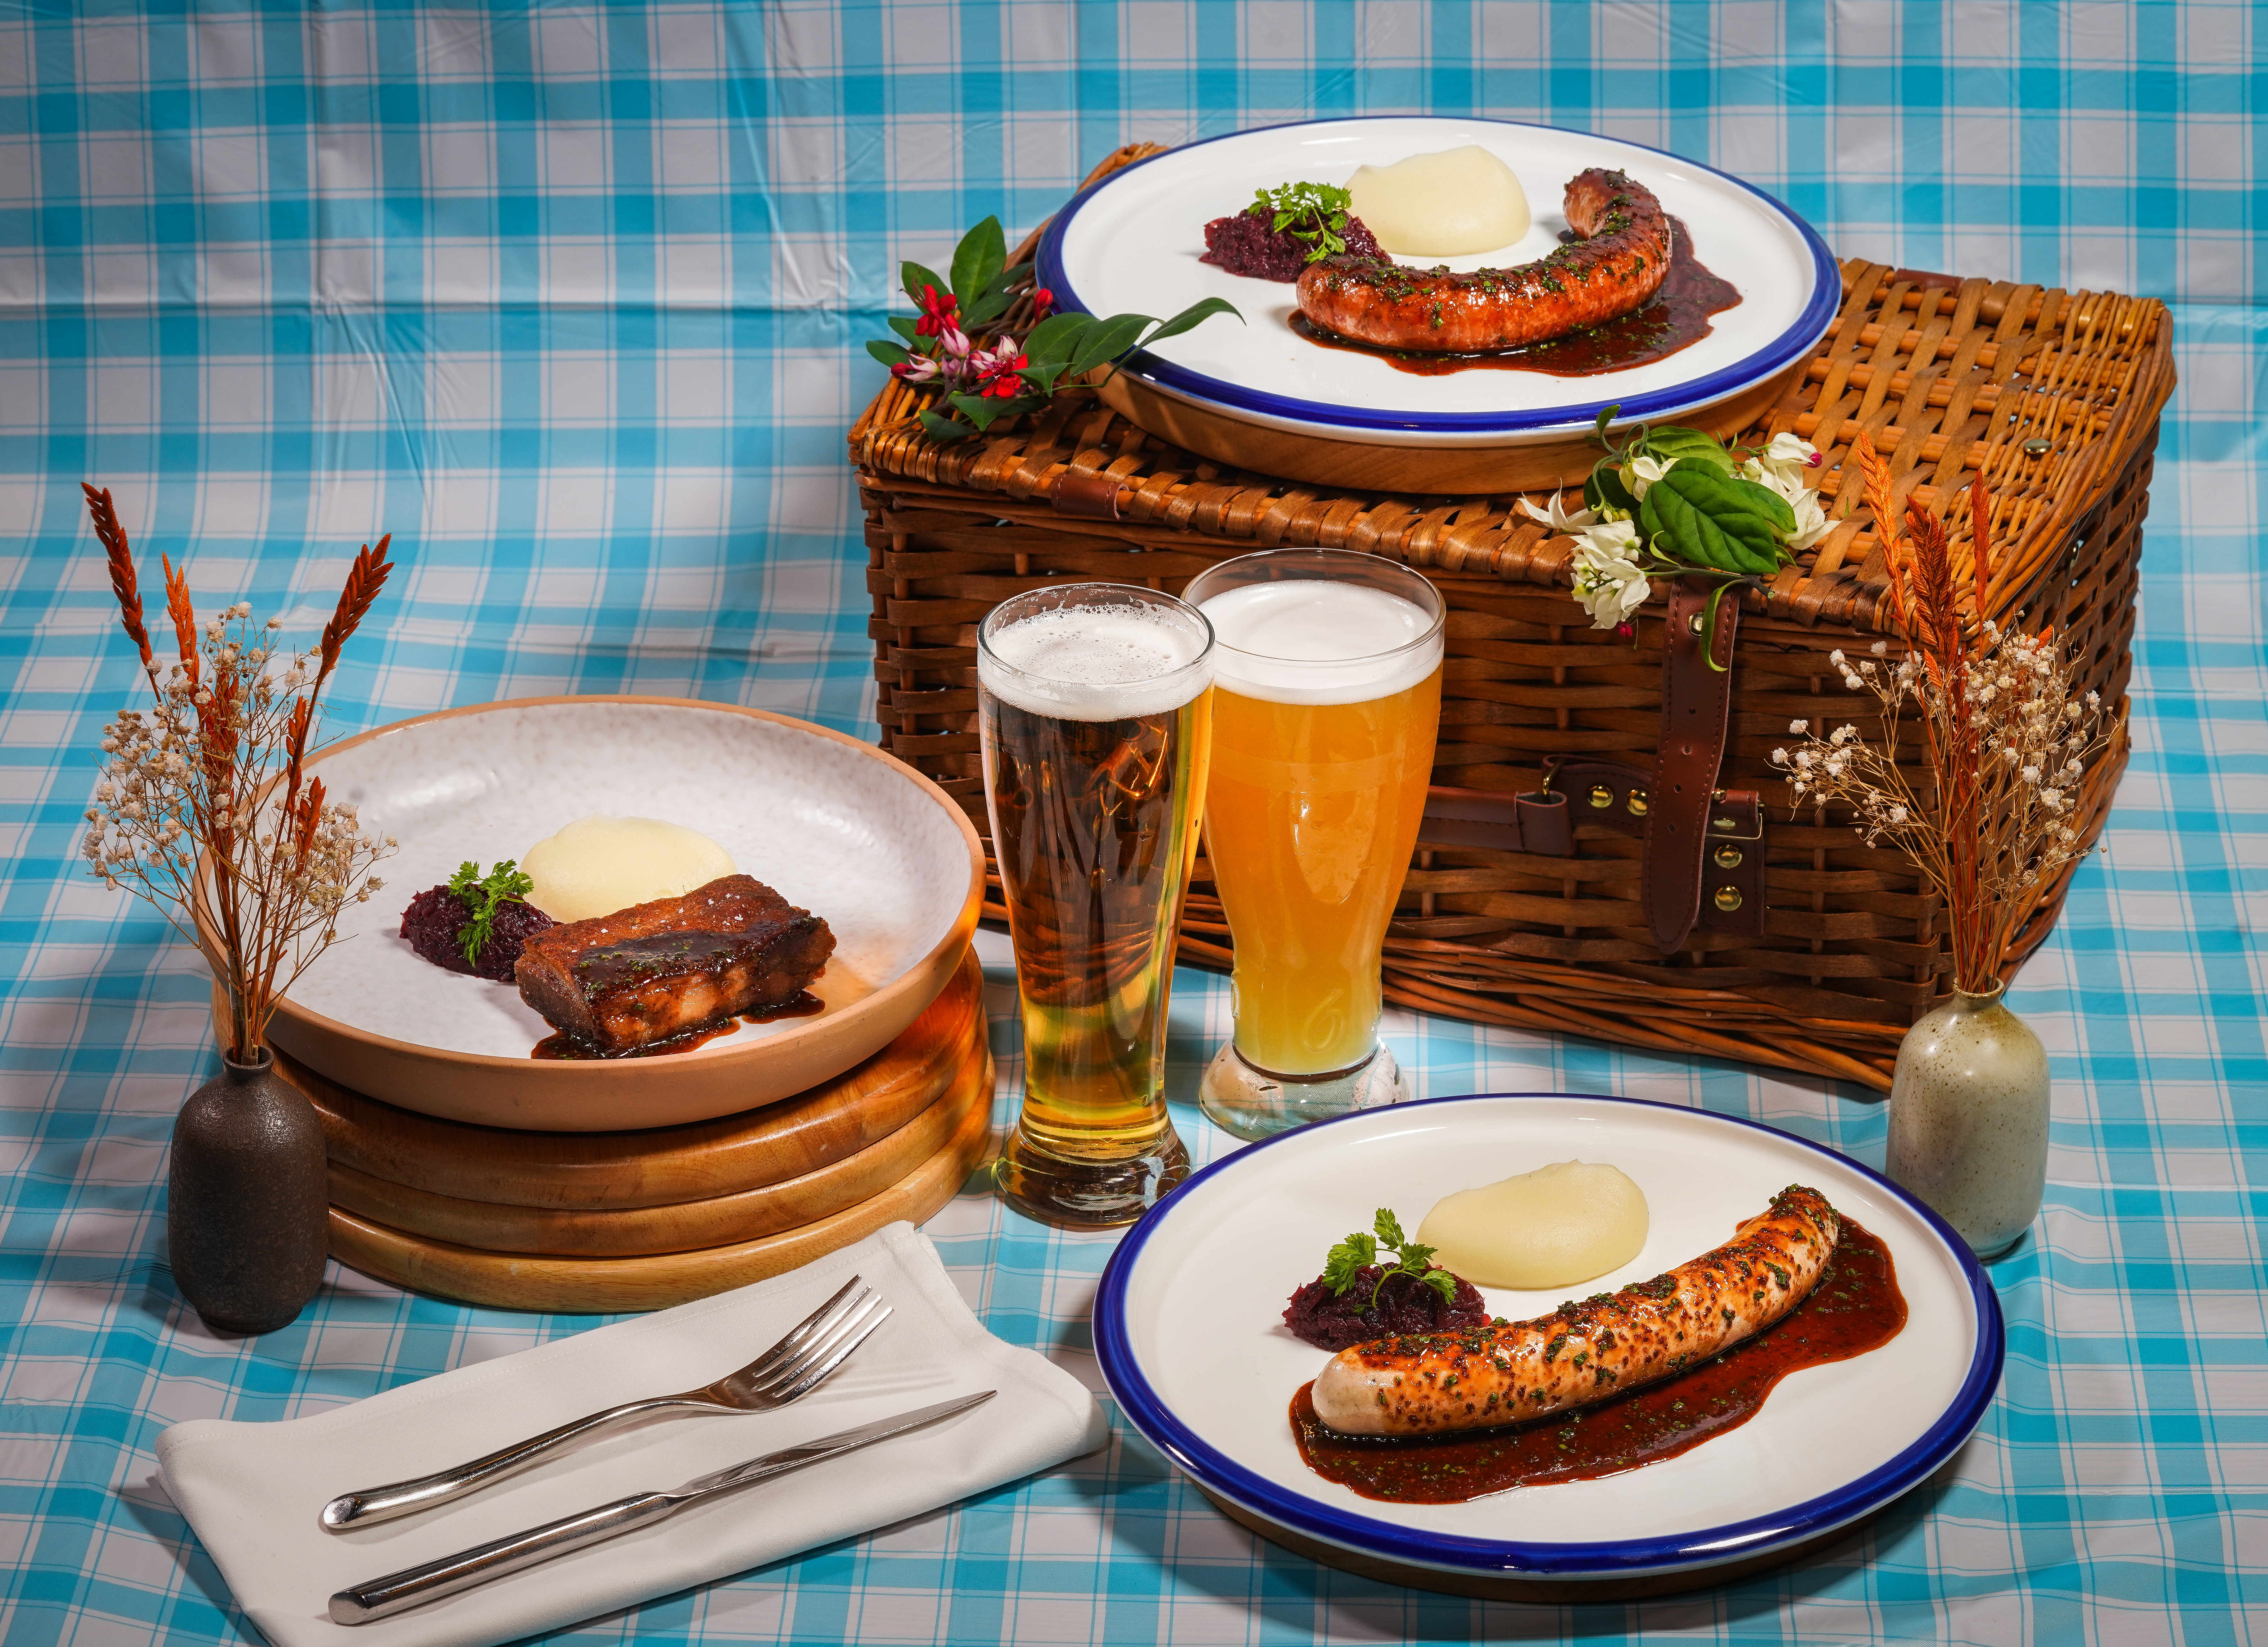 oktoberfest bavarian specials with beer promos for $9 all day at The Spot Singapore